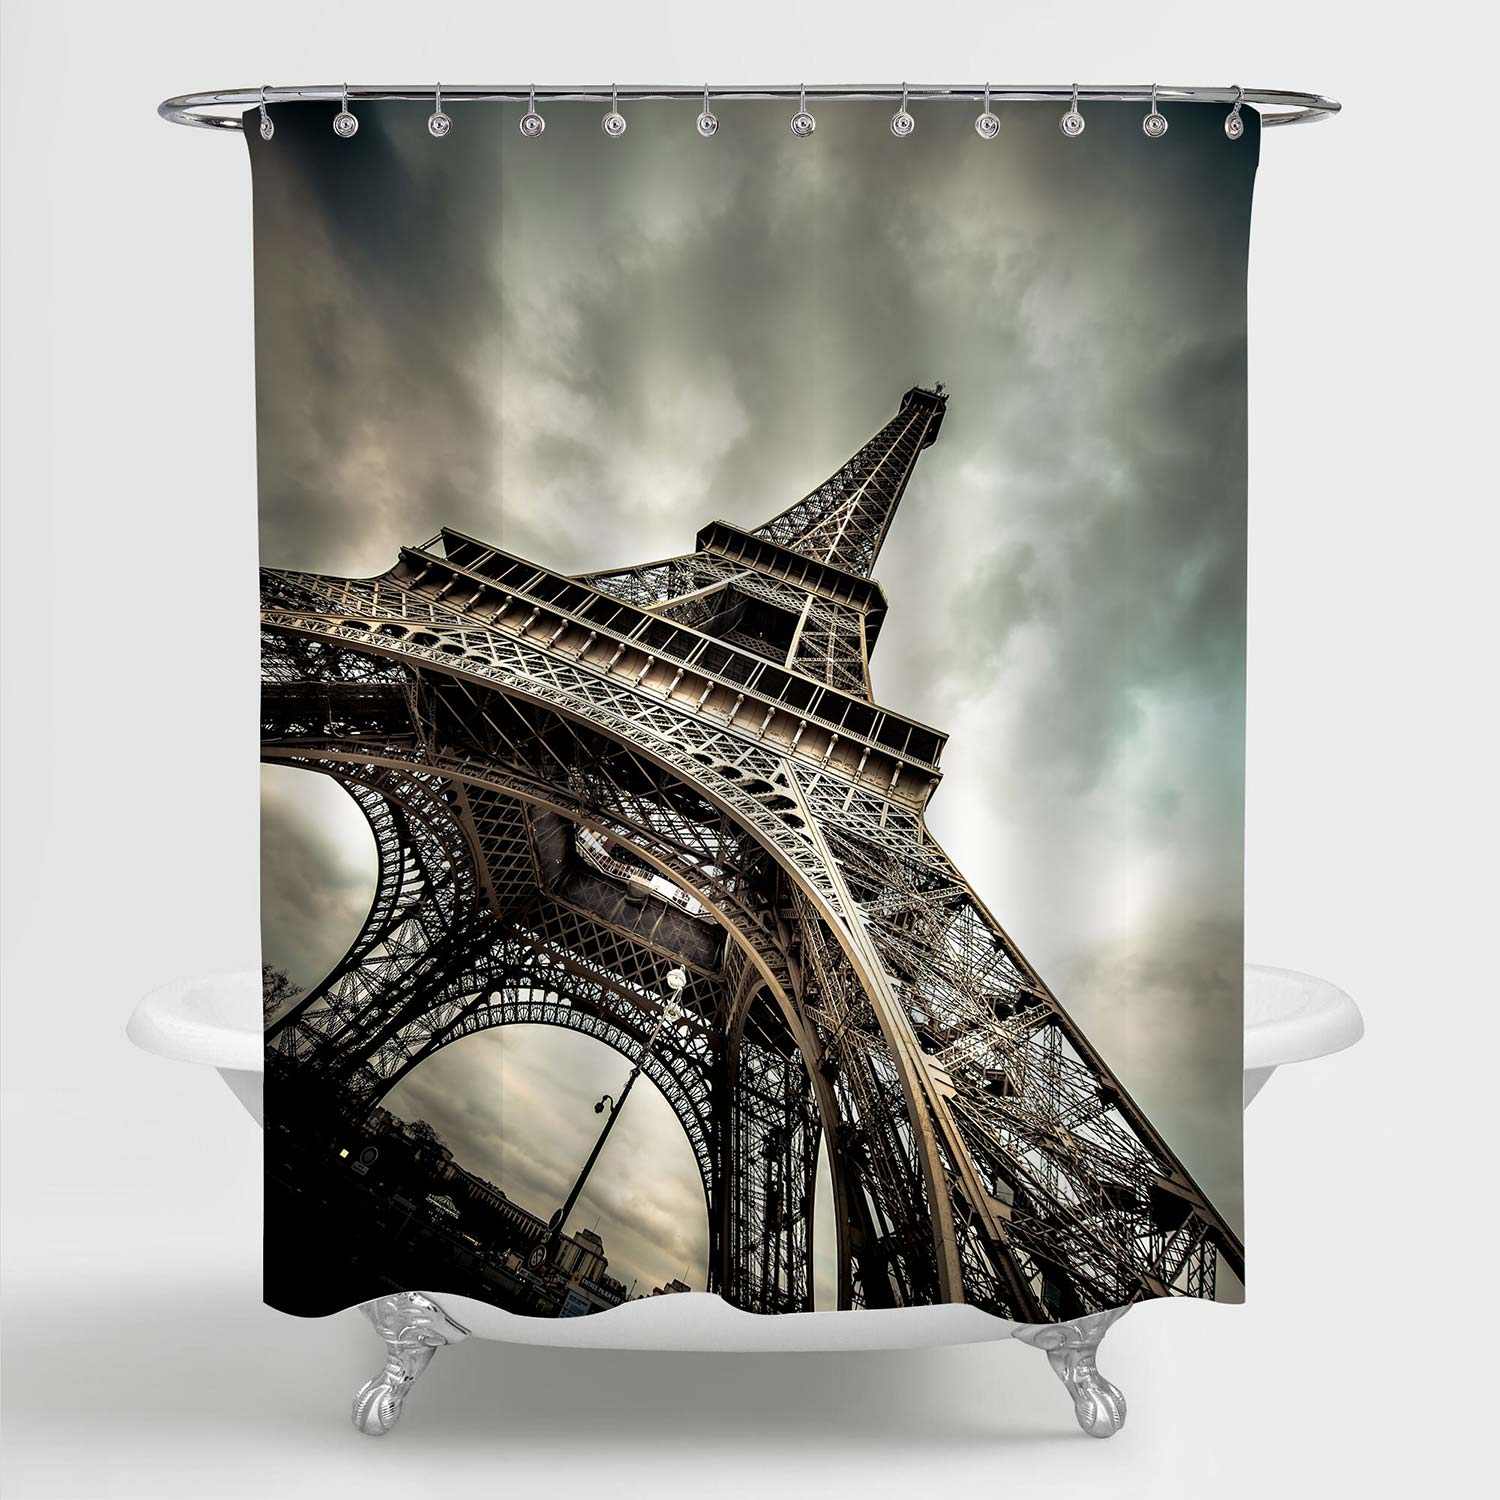 Majestic Eiffel Tower Paris Landmark Shower Curtain